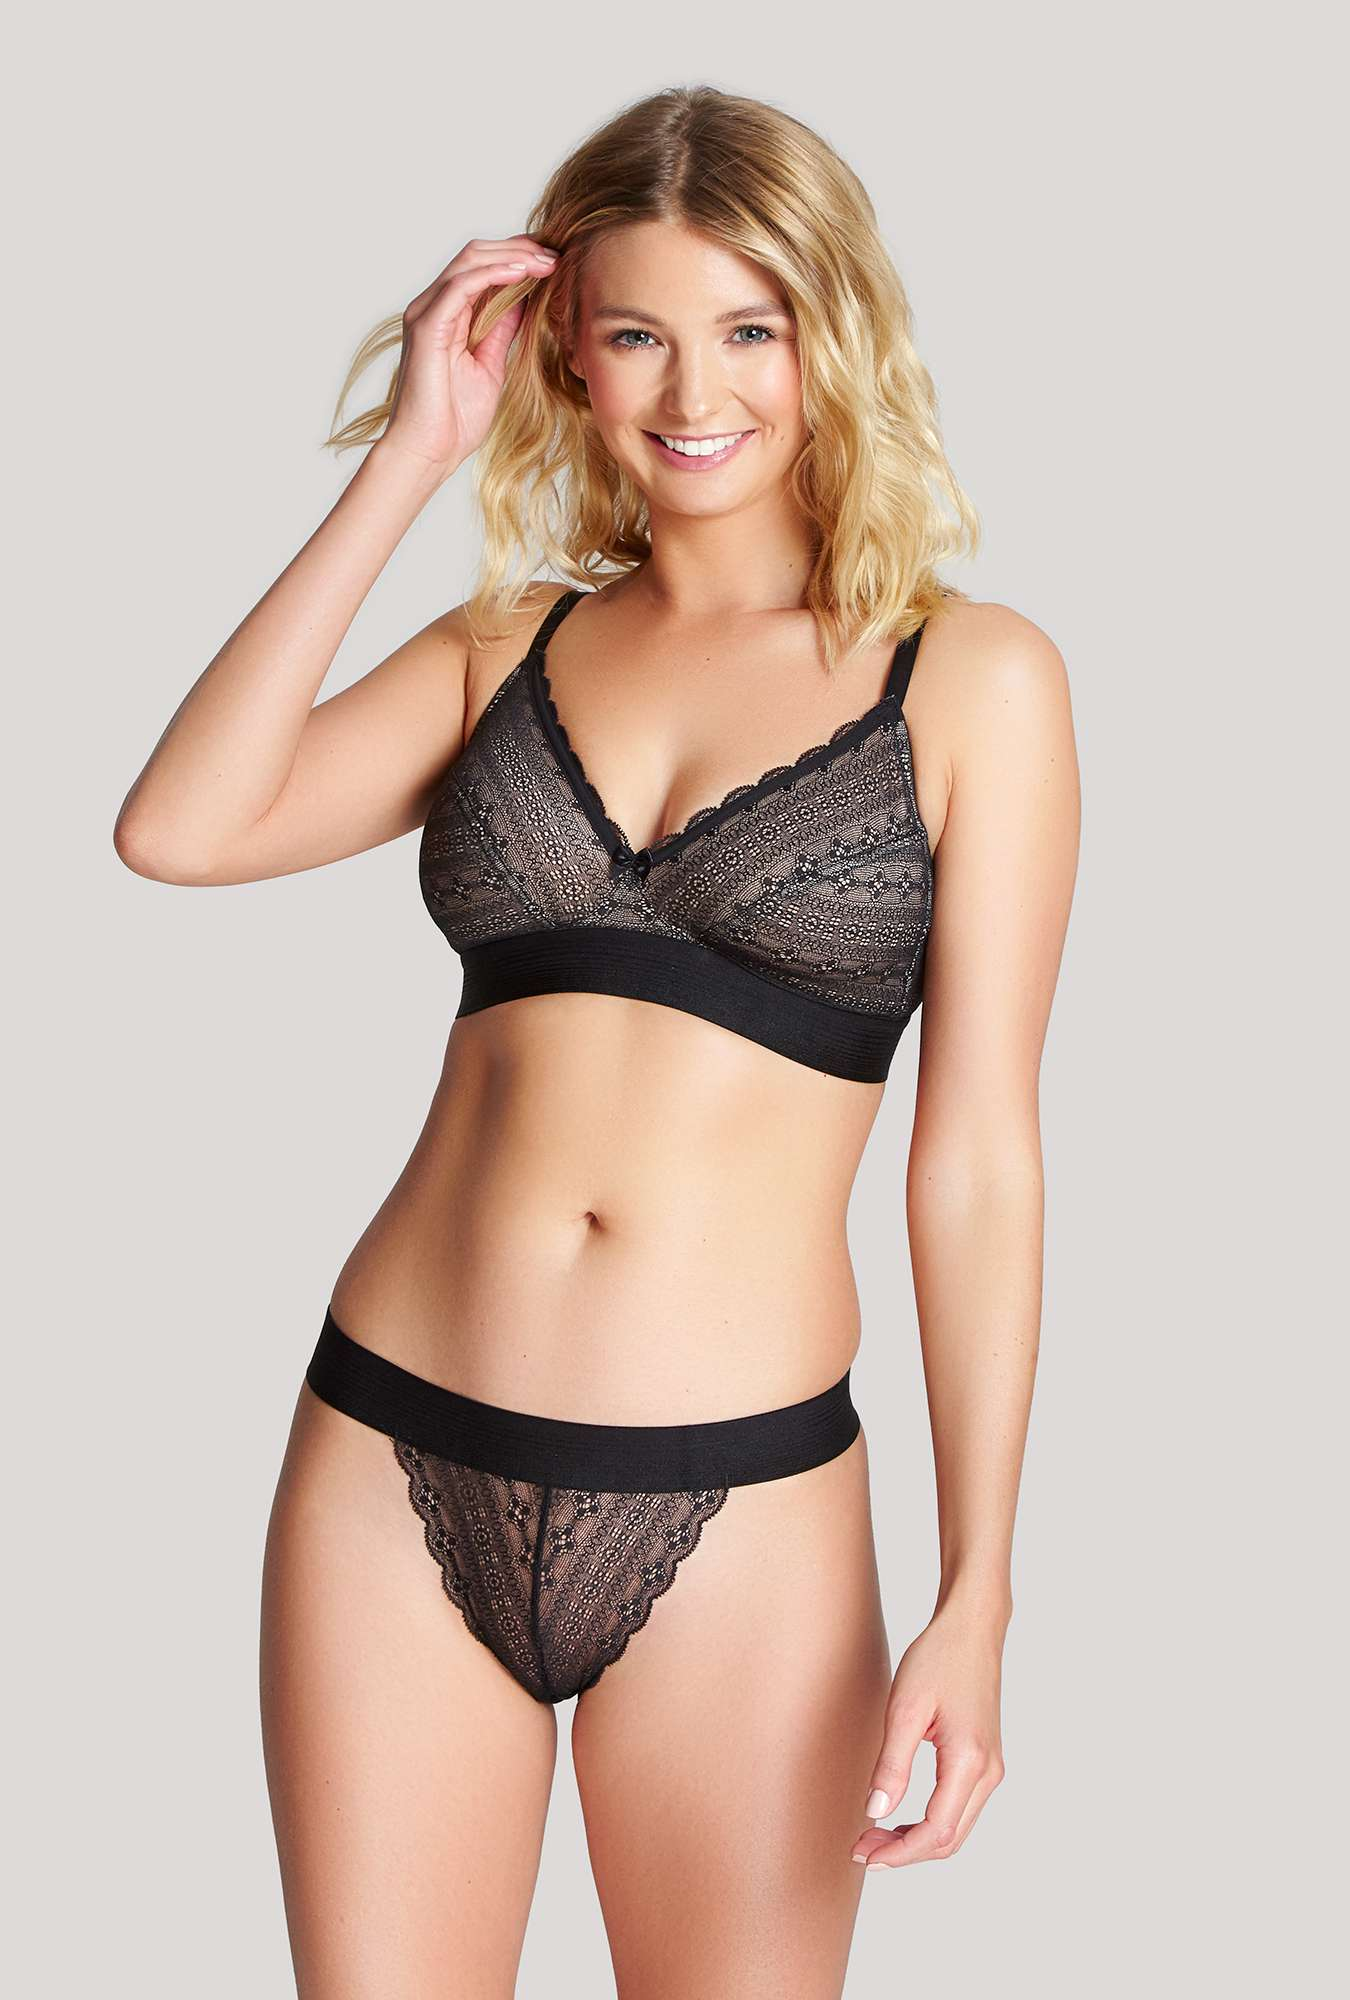 great look good texture new style Lyzy Triangle - Panache Lingerie